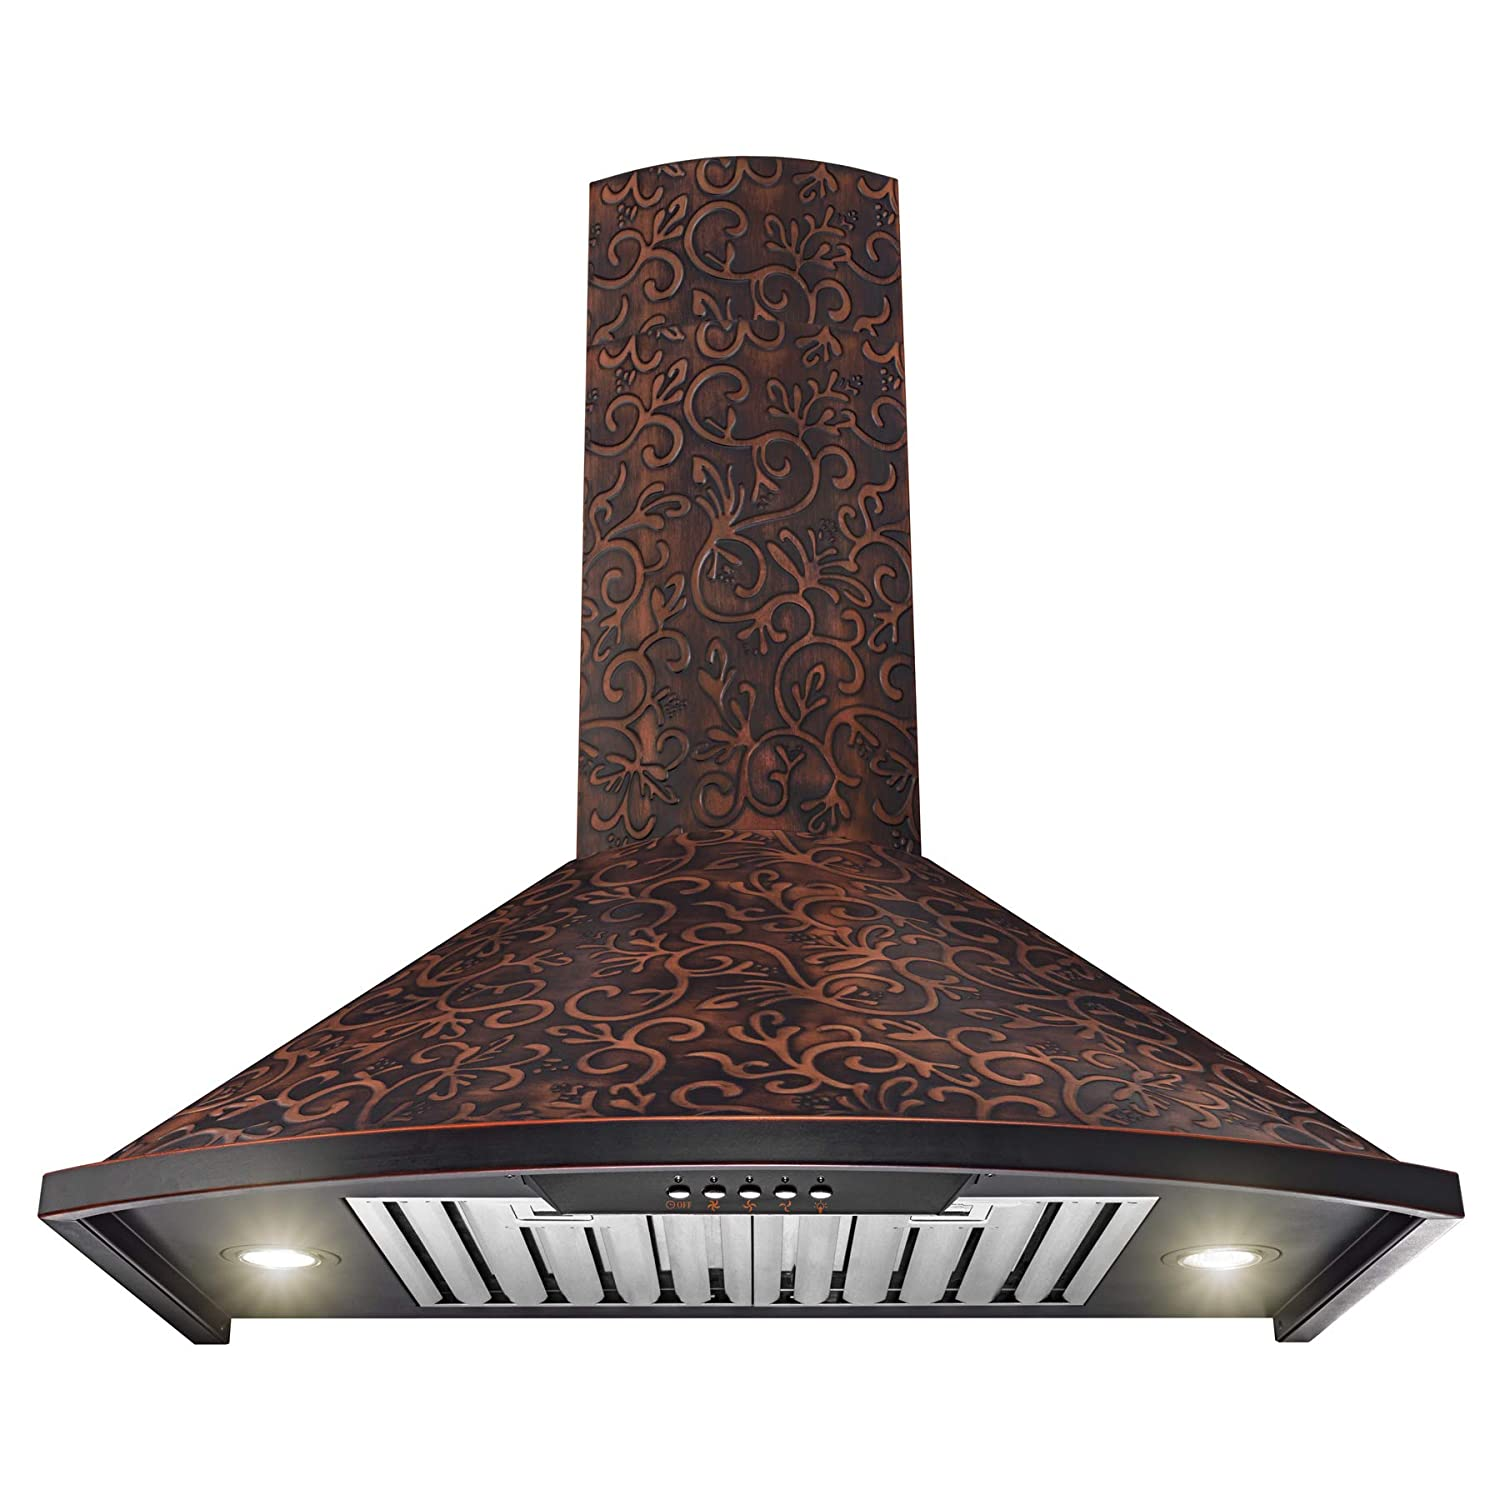 "AKDY RH0400 Wall Mount Range Hood –30"" Embossed Copper Hood Fan for Kitchen – 3-Speed Professional Quiet Motor – Premium Push Control Panel – Elegant Vine Design – Baffle Filter & Halogen Lamp"